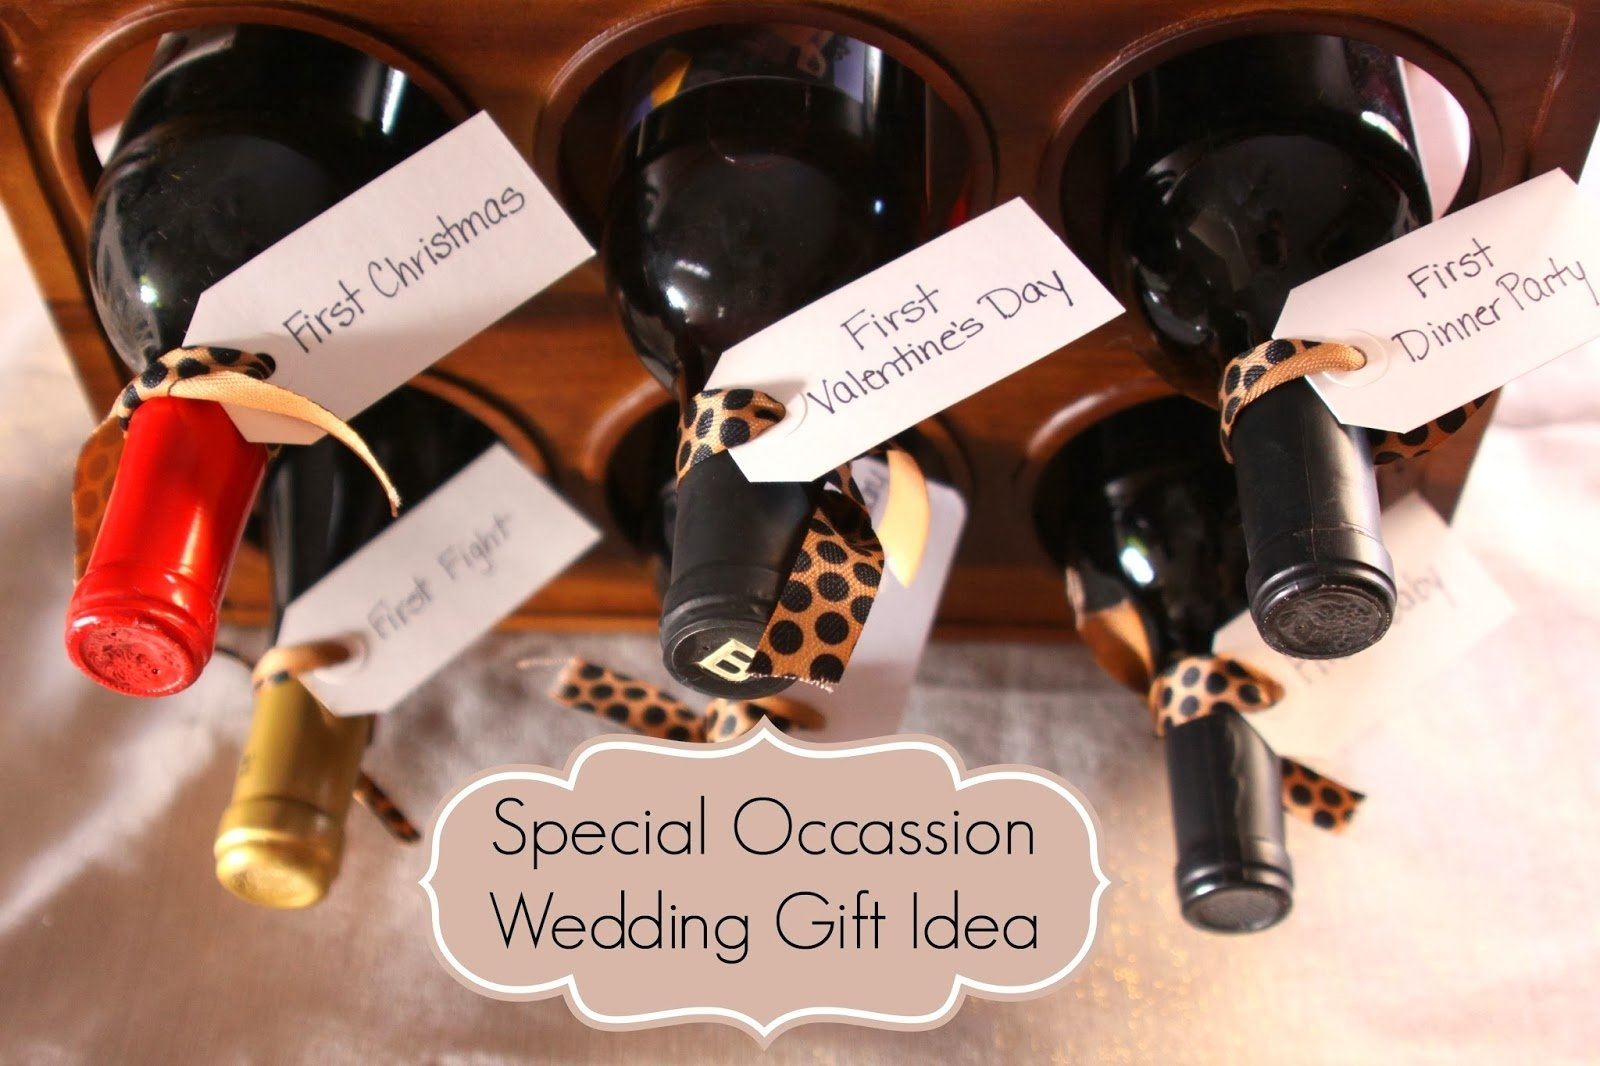 10 Most Recommended Wedding Gift Ideas For Sister our pinteresting family special day wedding gift idea target 2020